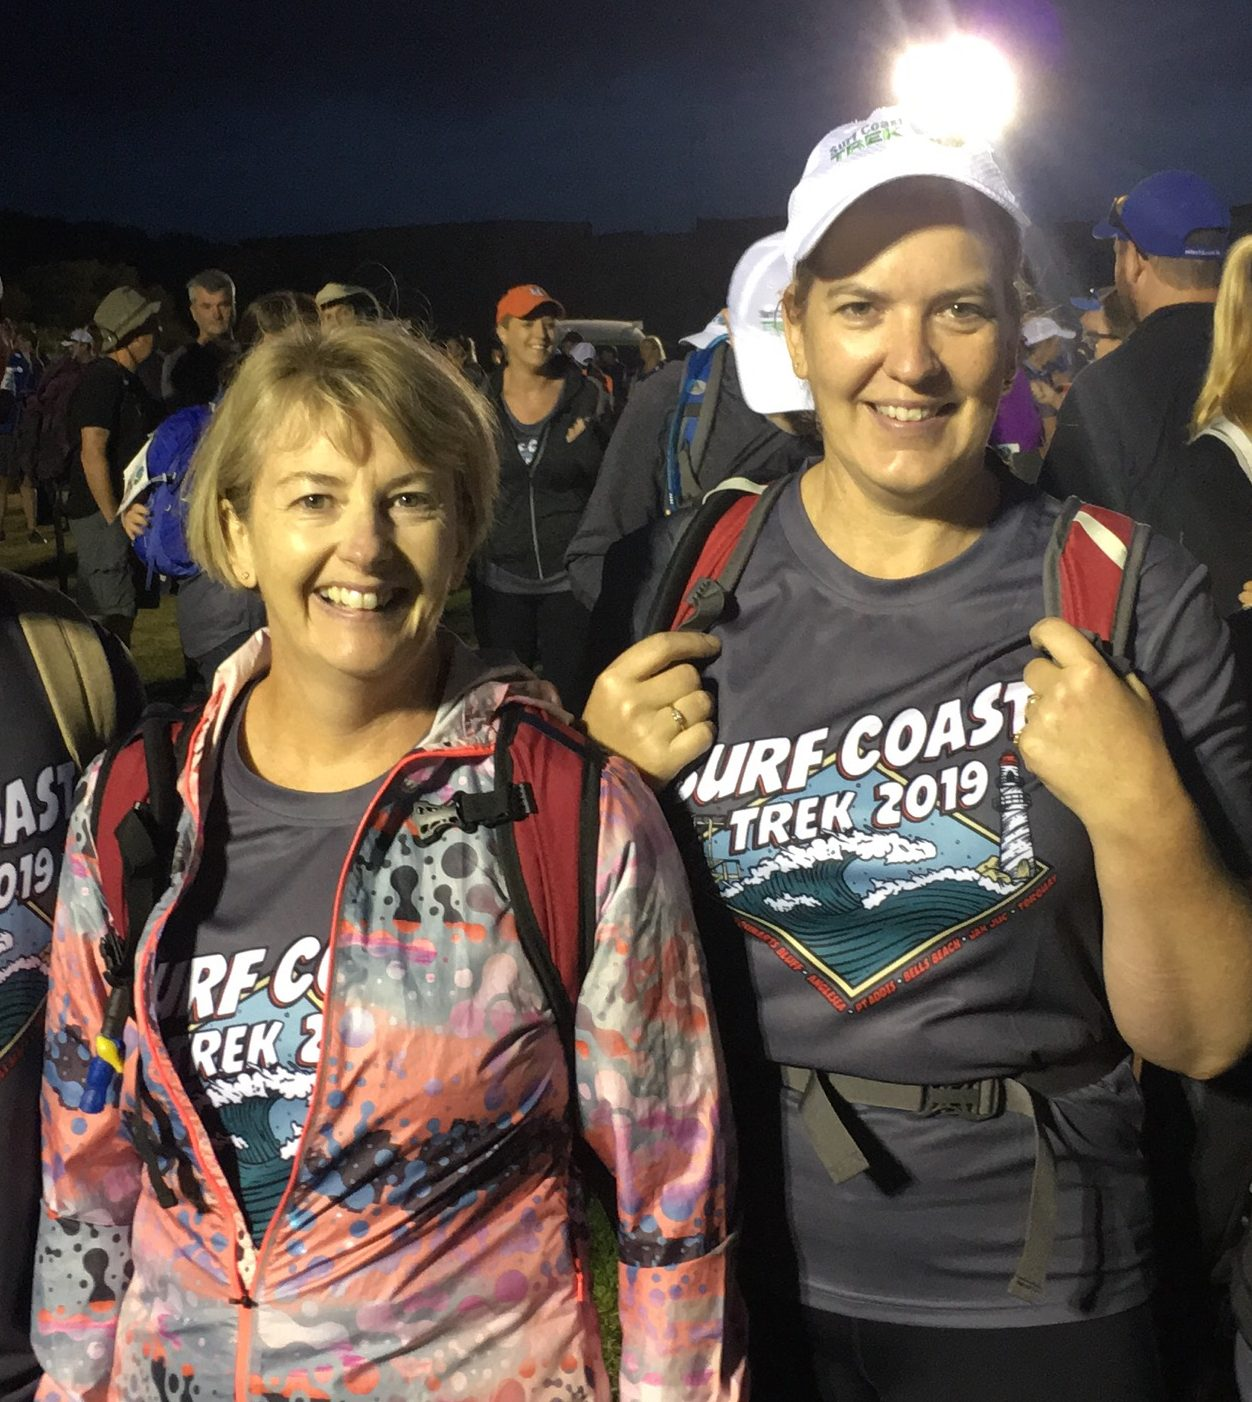 Patrick Rowan employees took part in the SurfCoast Trek 2019